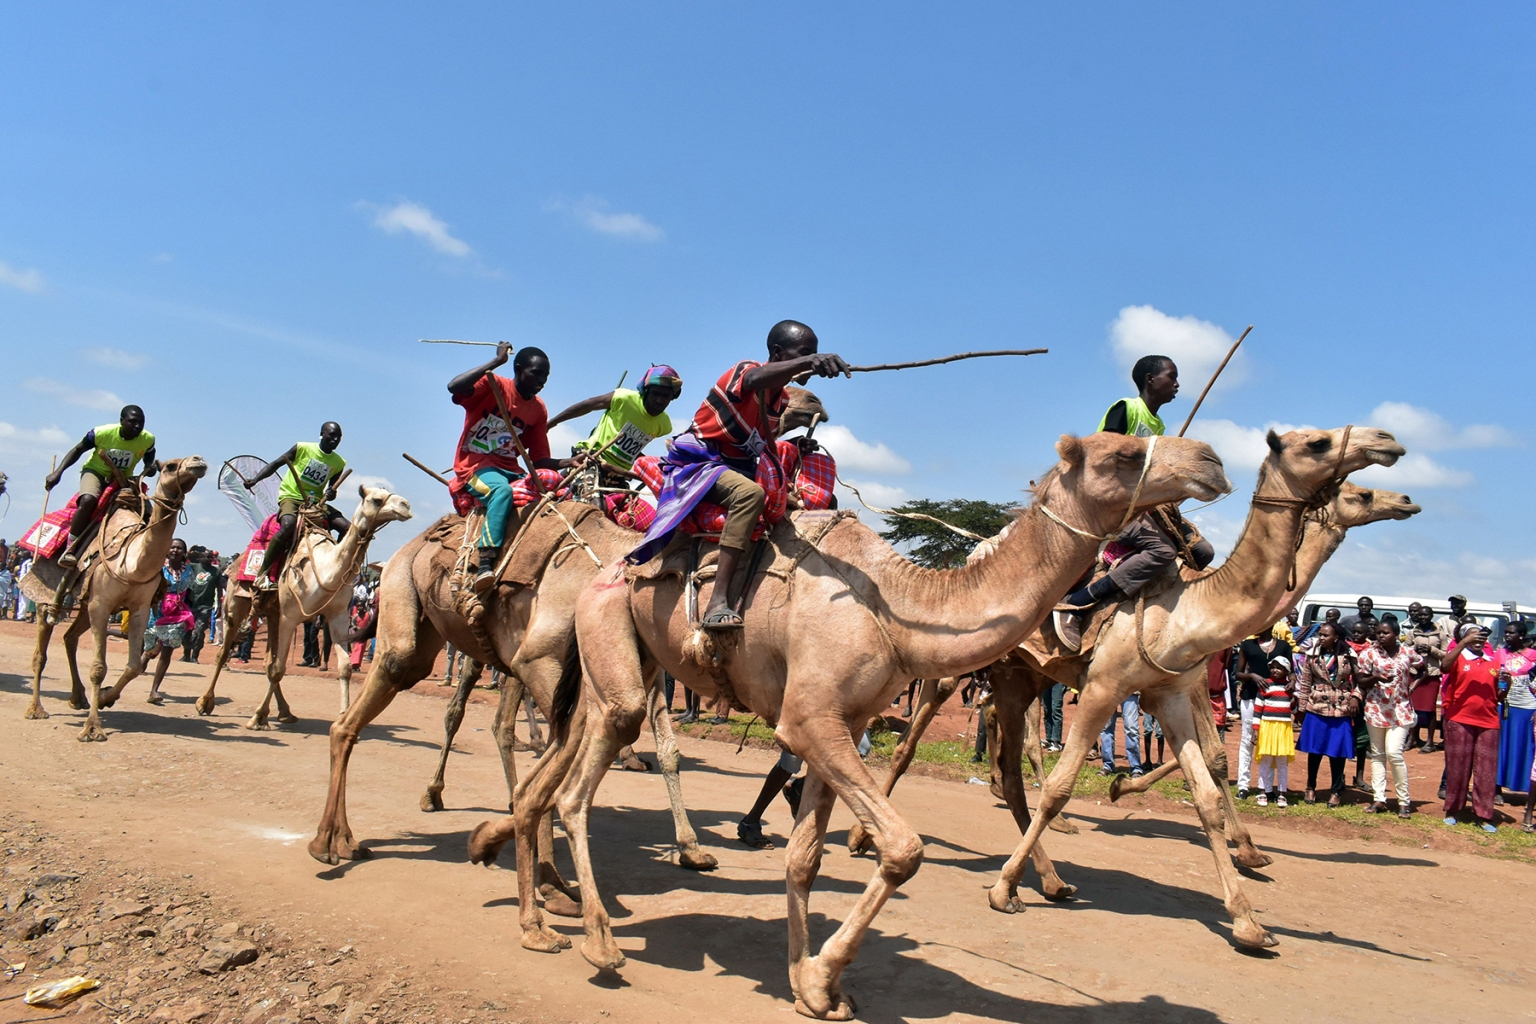 Racers compete in the Maralal International Camel Derby in Samburu County, Northern Kenya, on Sept. 2.The annual event is Kenya's most prestigious camel race, attracting international and local competitors in amateur and professional categories who are breathing life into the remote desert town. ANDREW KASUKU/AFP/Getty Images